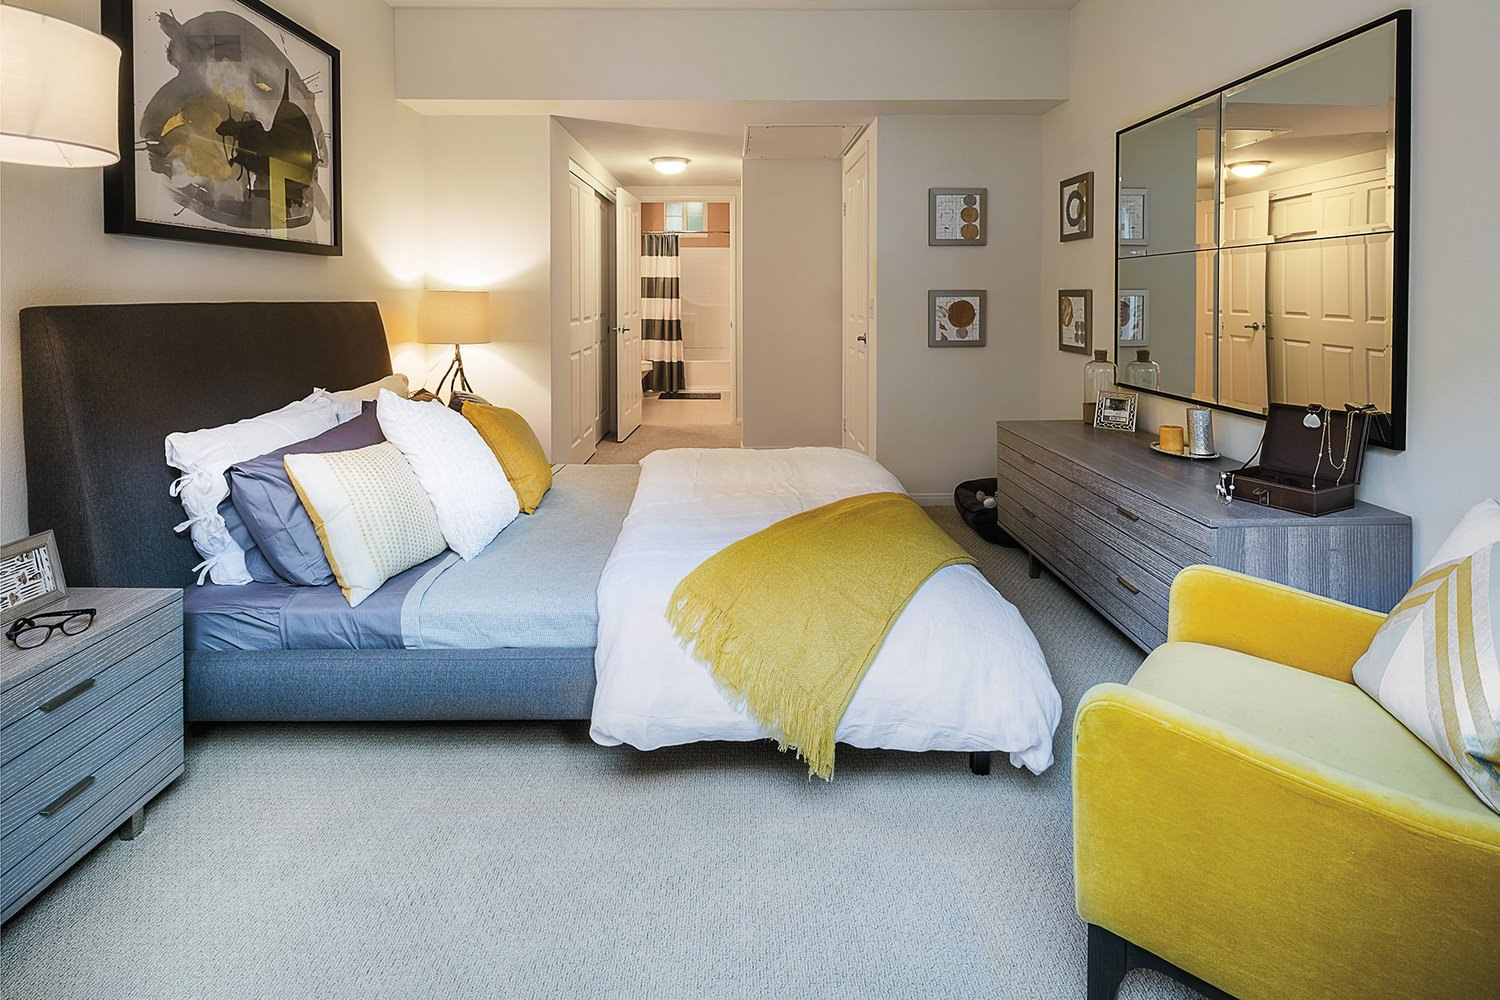 A bedroom that has a bed with sheets on it and a large mirror that is on the wall across form it.